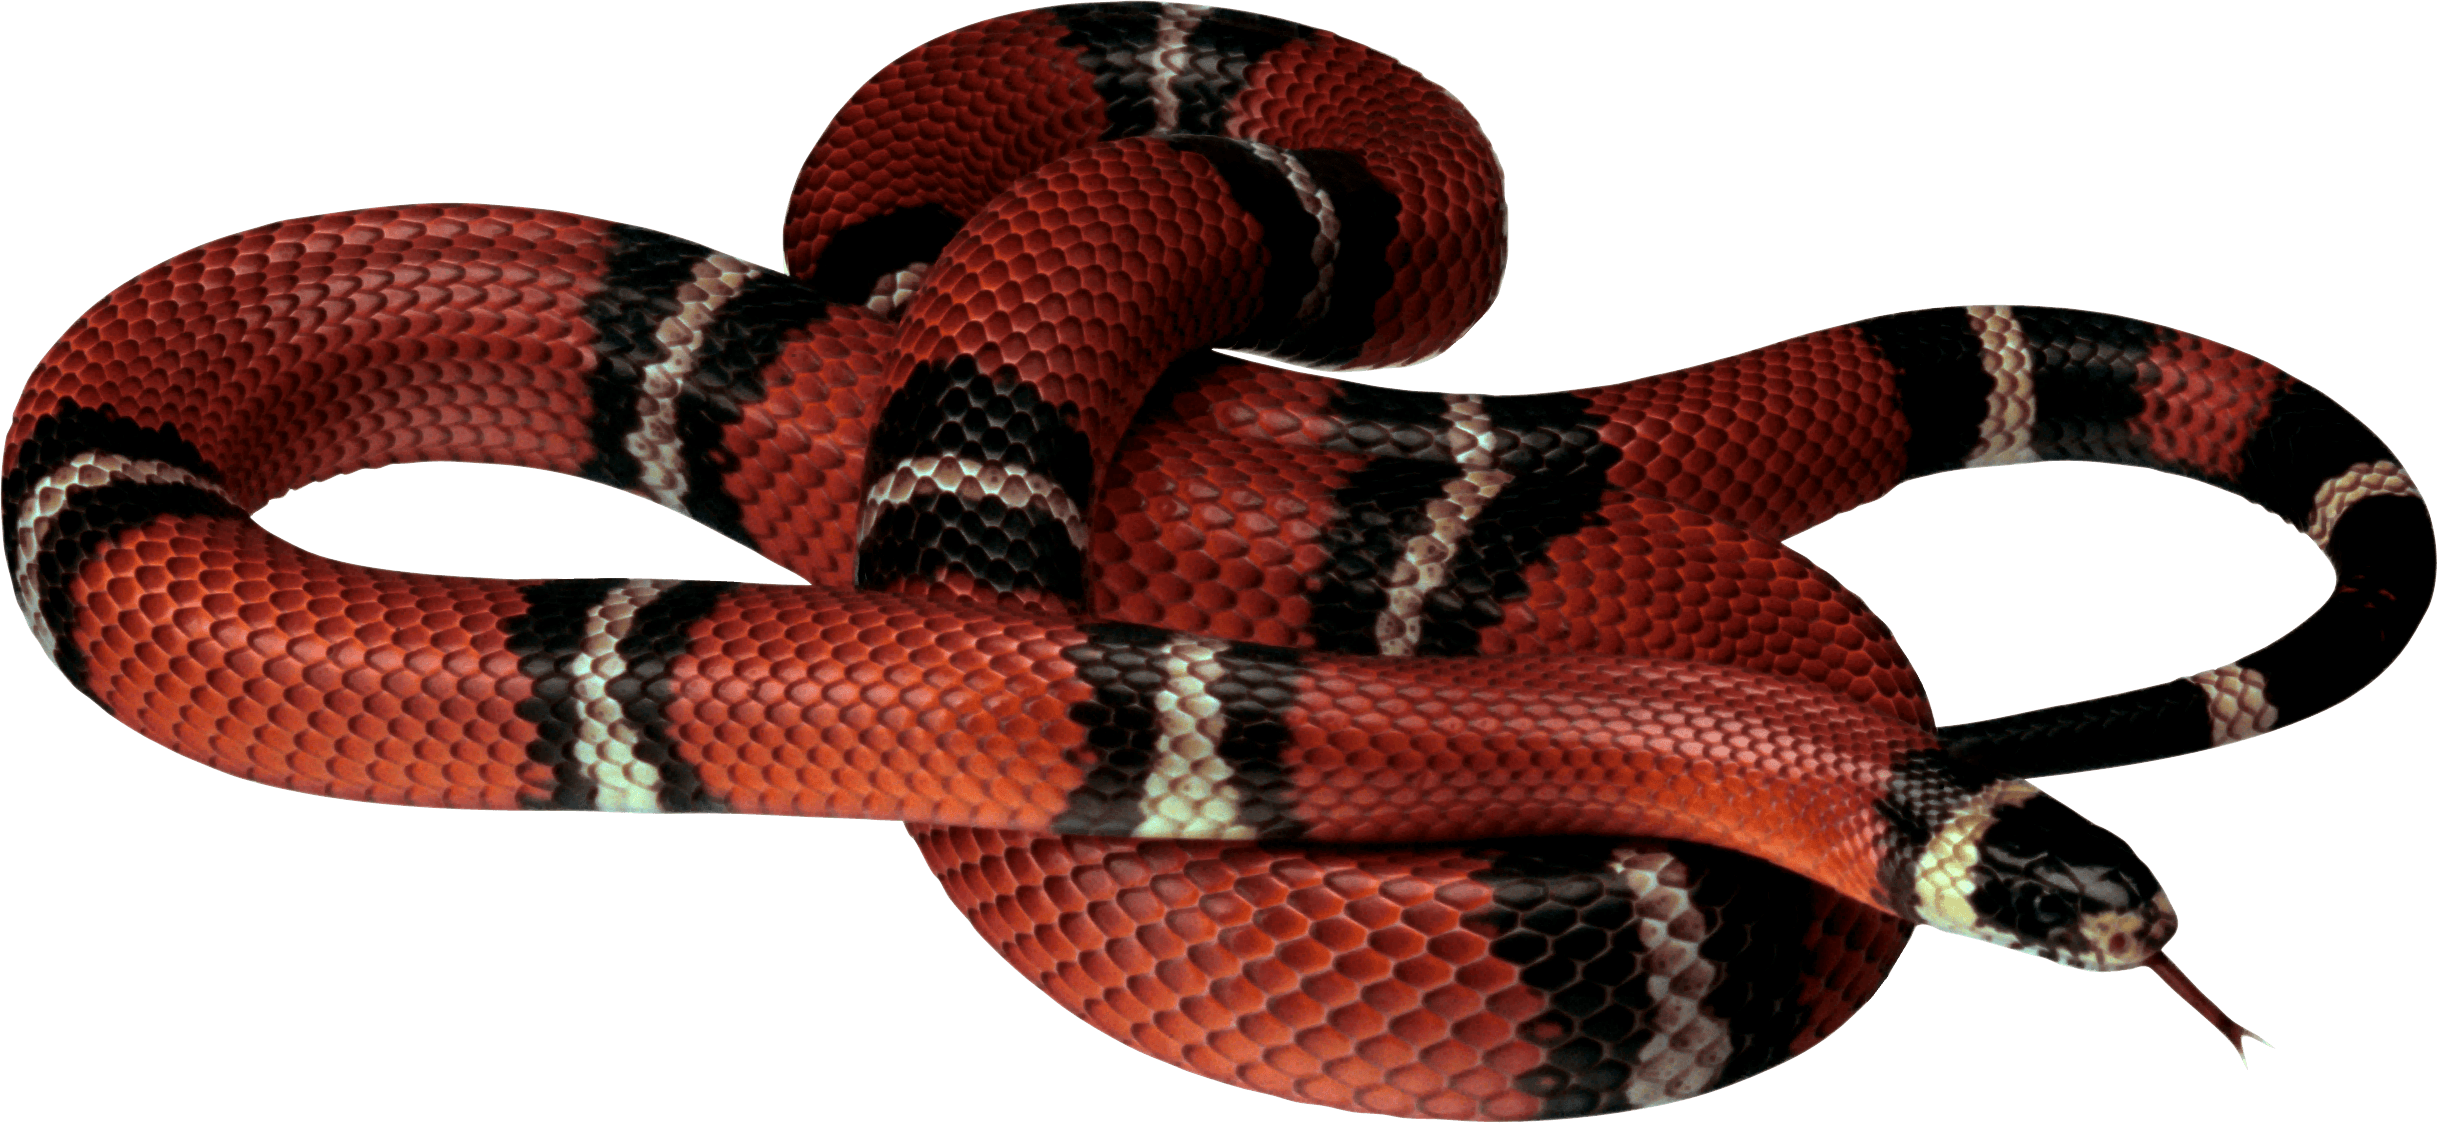 Snake gucci png. Wallpapers wallpaper cave image